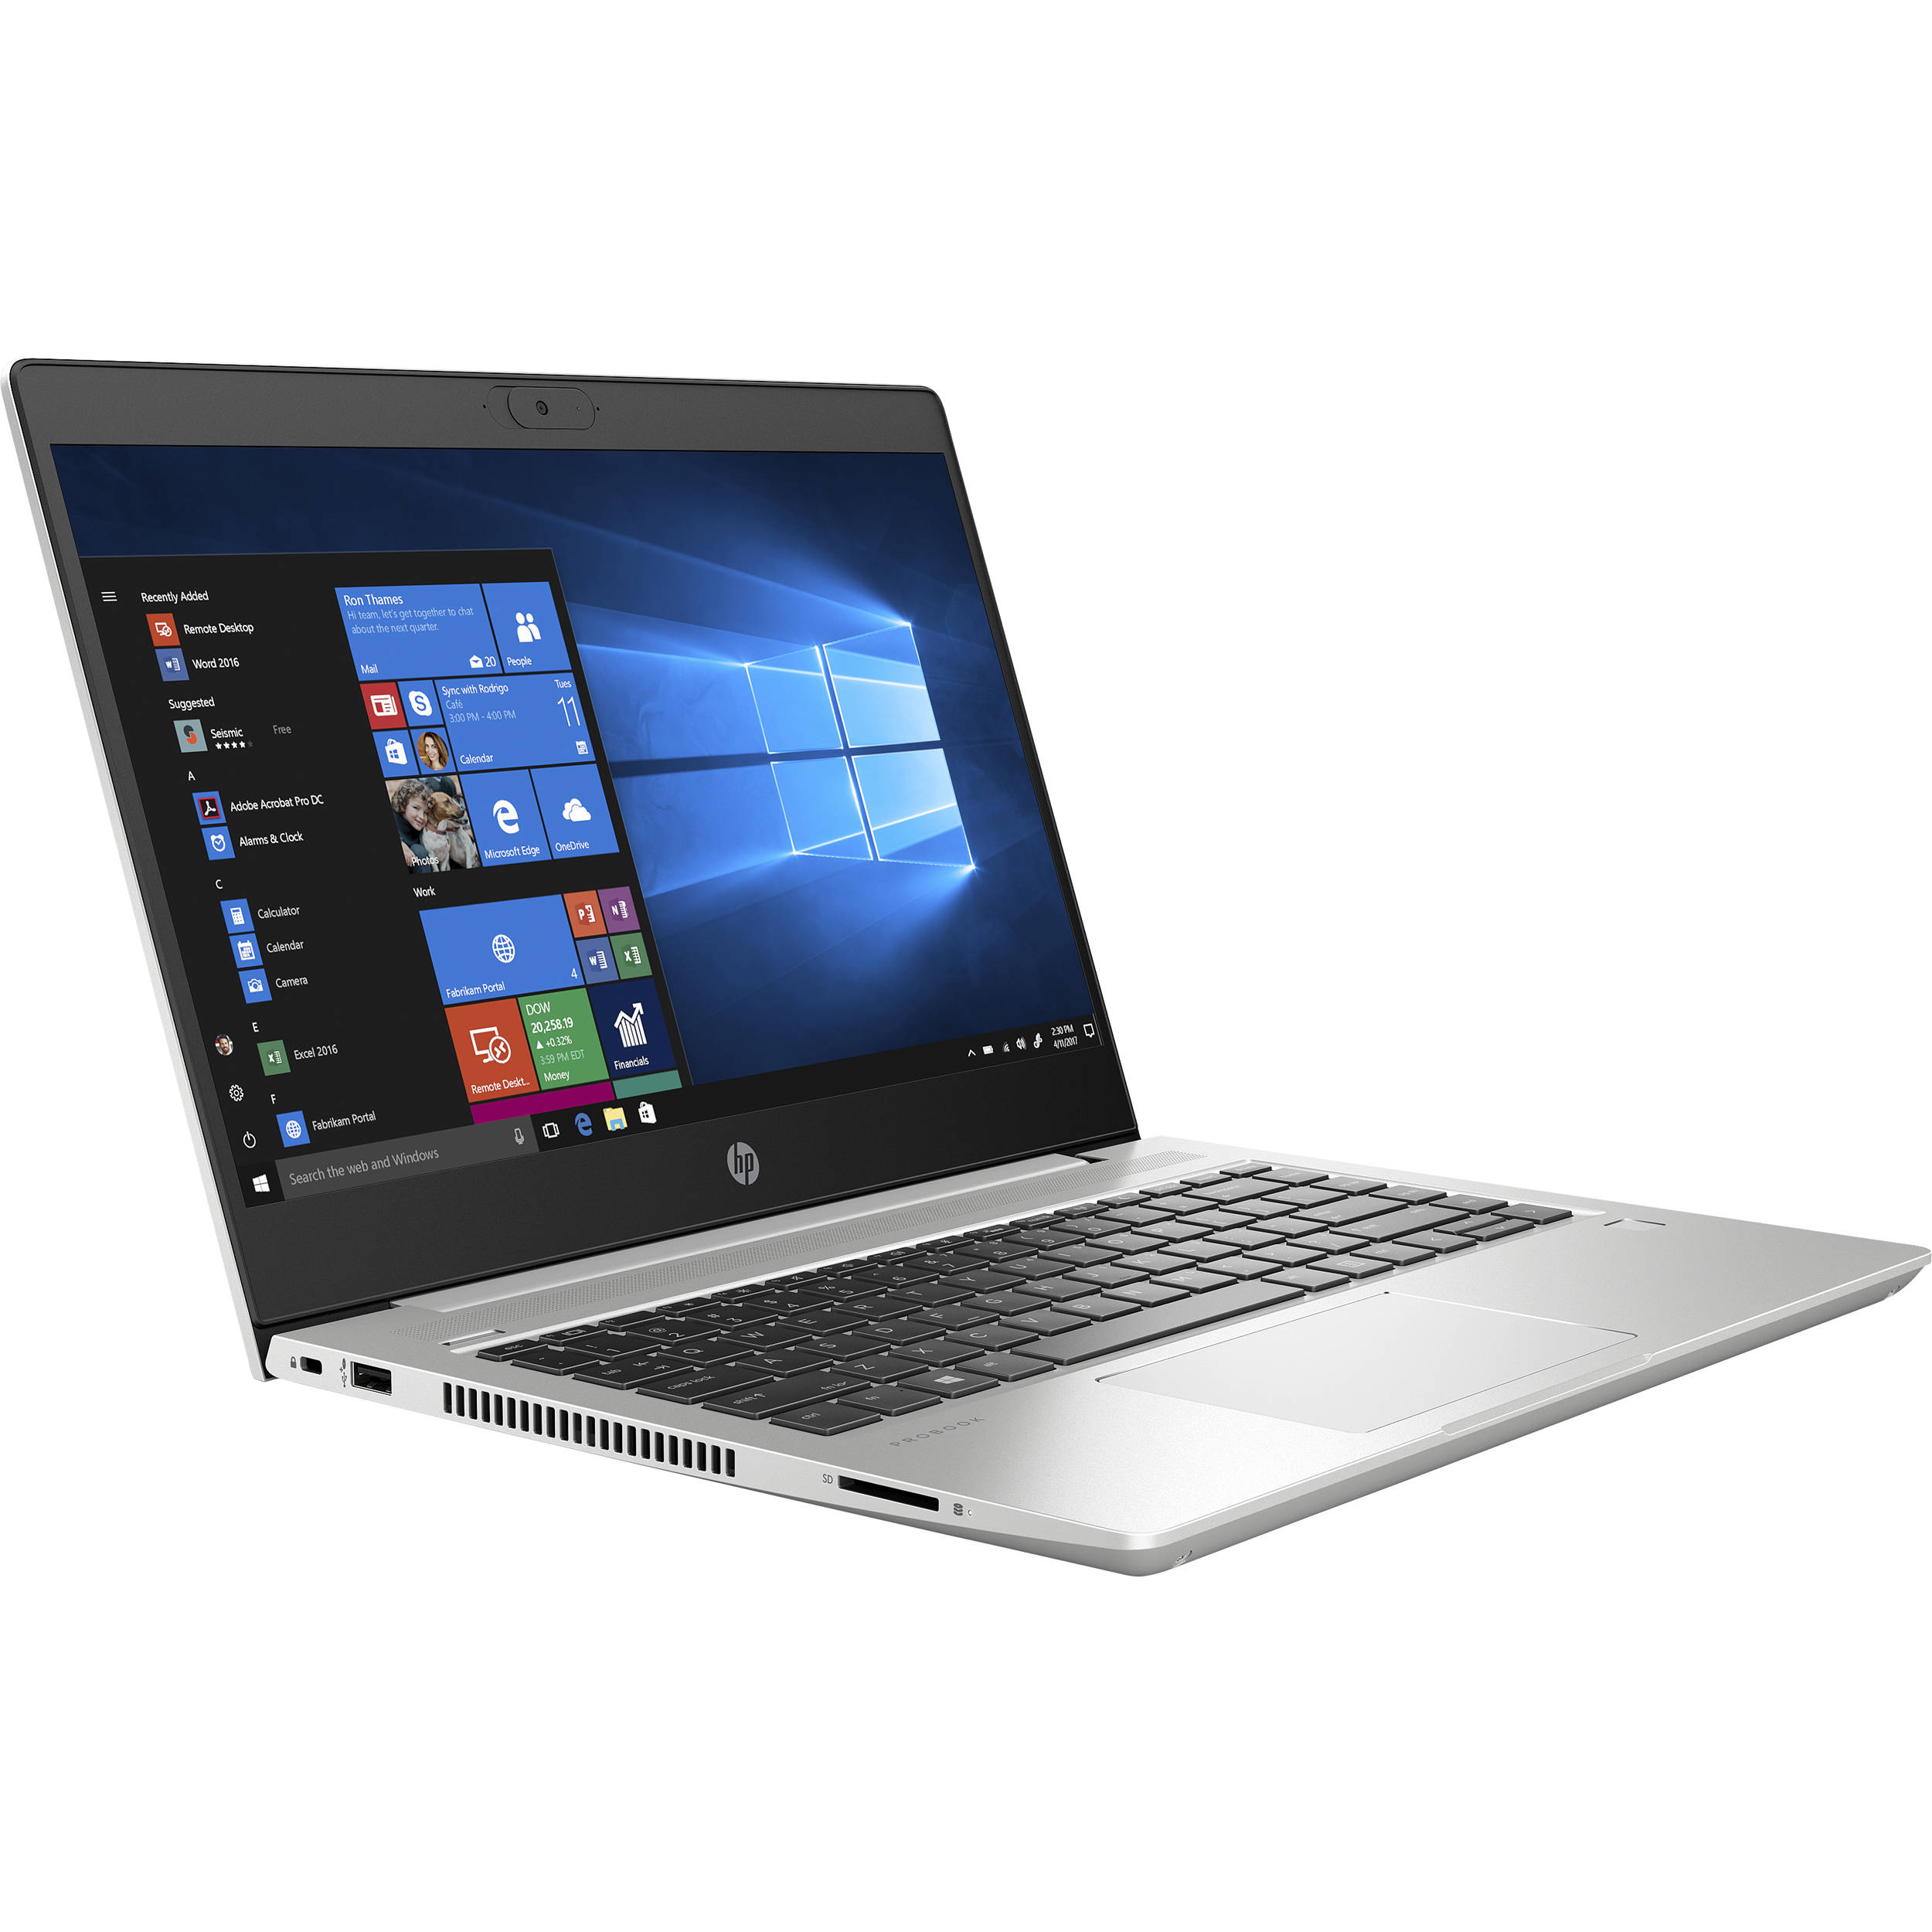 How to free up memory on hp laptop